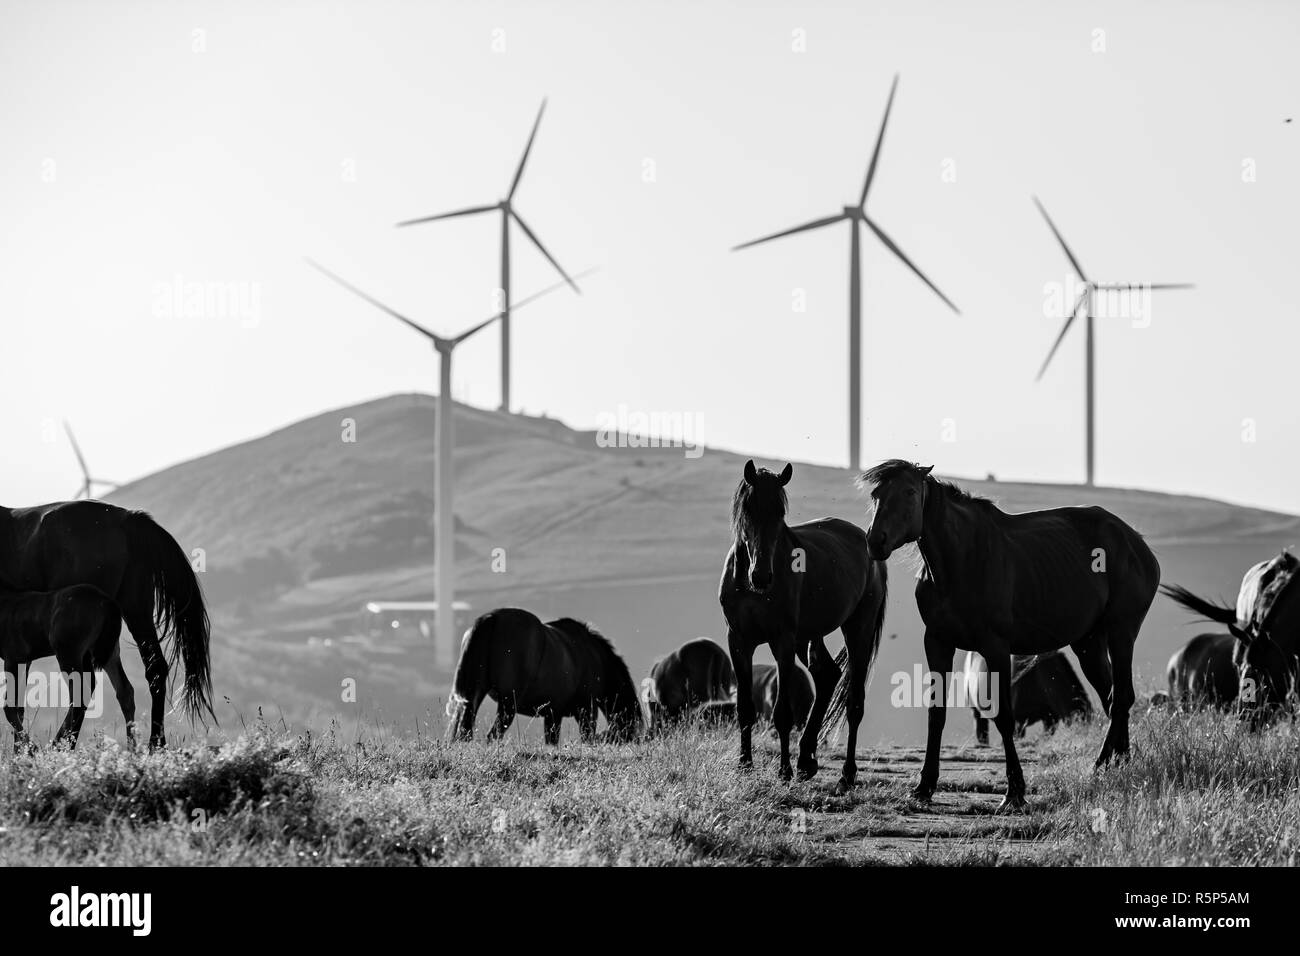 Two horses play in the early spring morning, part of herd, in black and white, free near Buzludzha Peak, Stara Planina mountain, Bulgaria - Stock Image